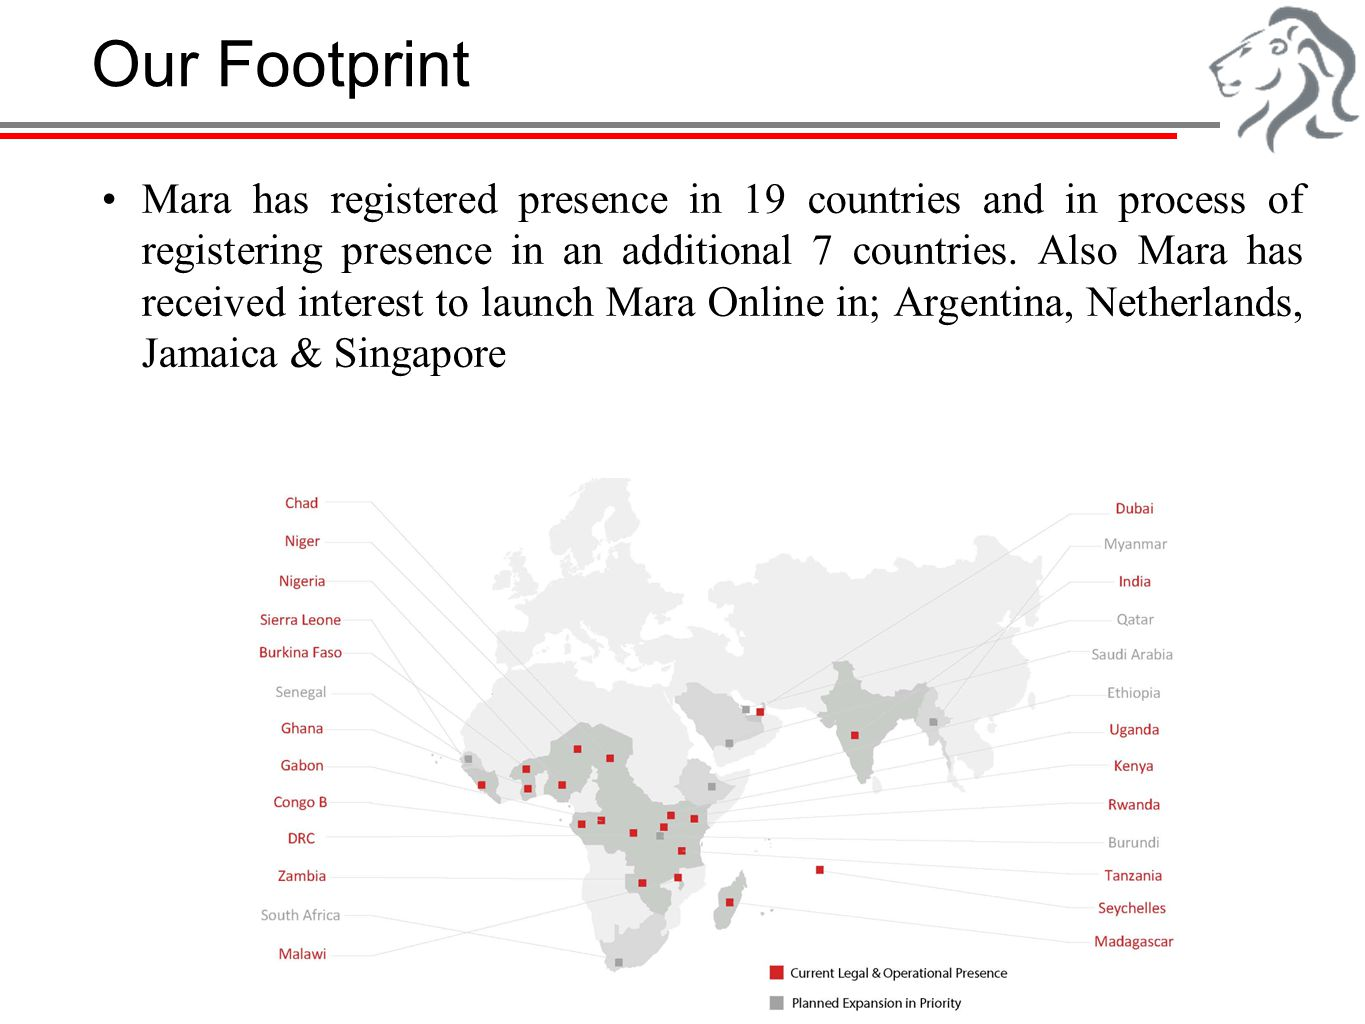 Our Footprint Mara has registered presence in 19 countries and in process of registering presence in an additional 7 countries. Also Mara has received